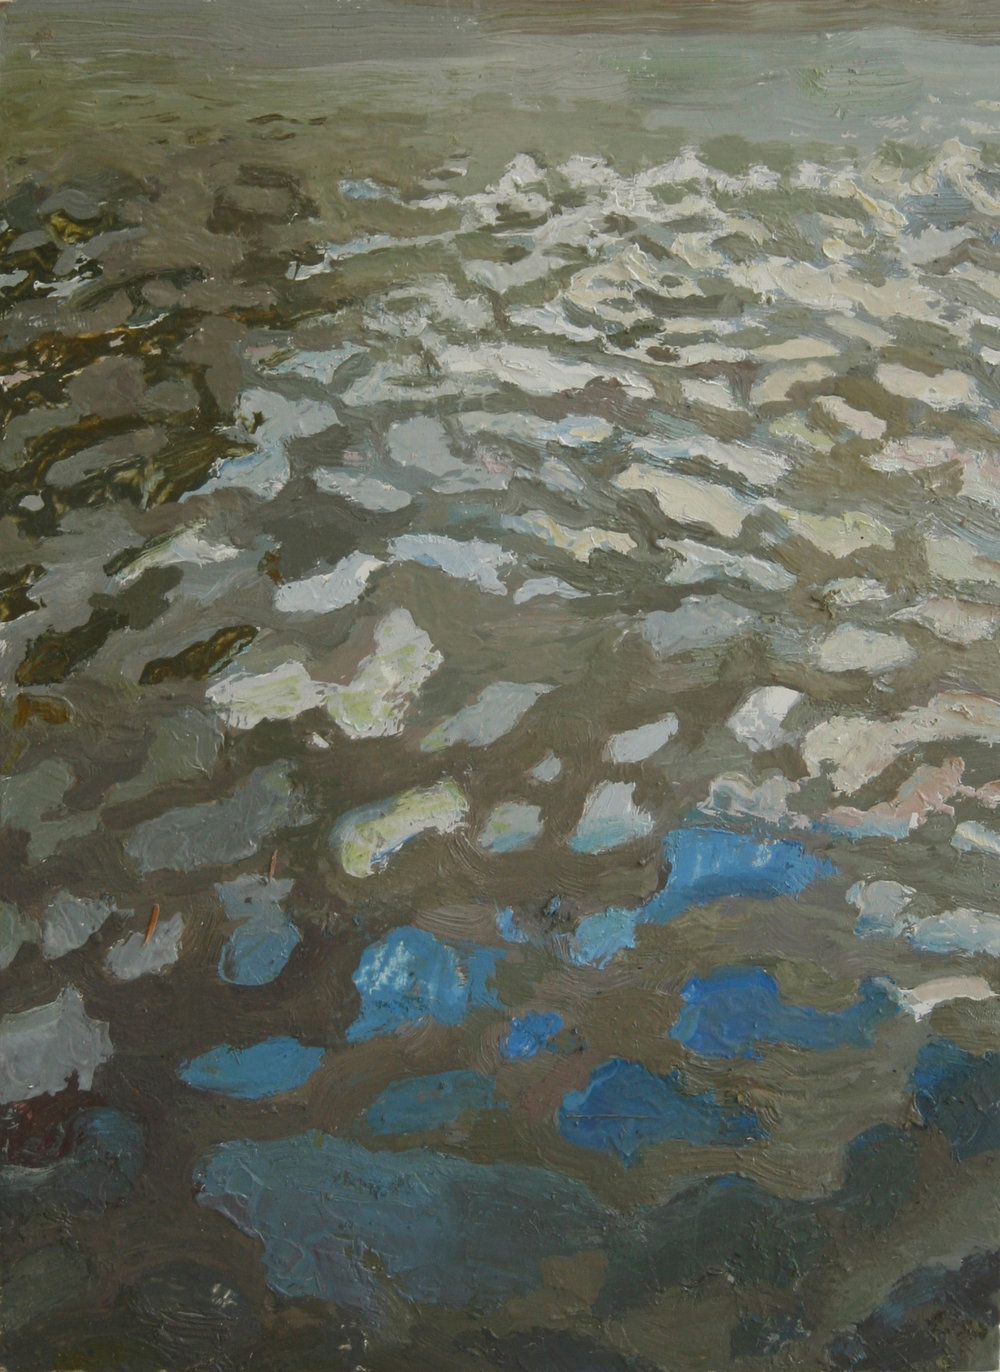 """Mud Reflections, Oil on panel, 12.5 x 9.5 """", 2014"""